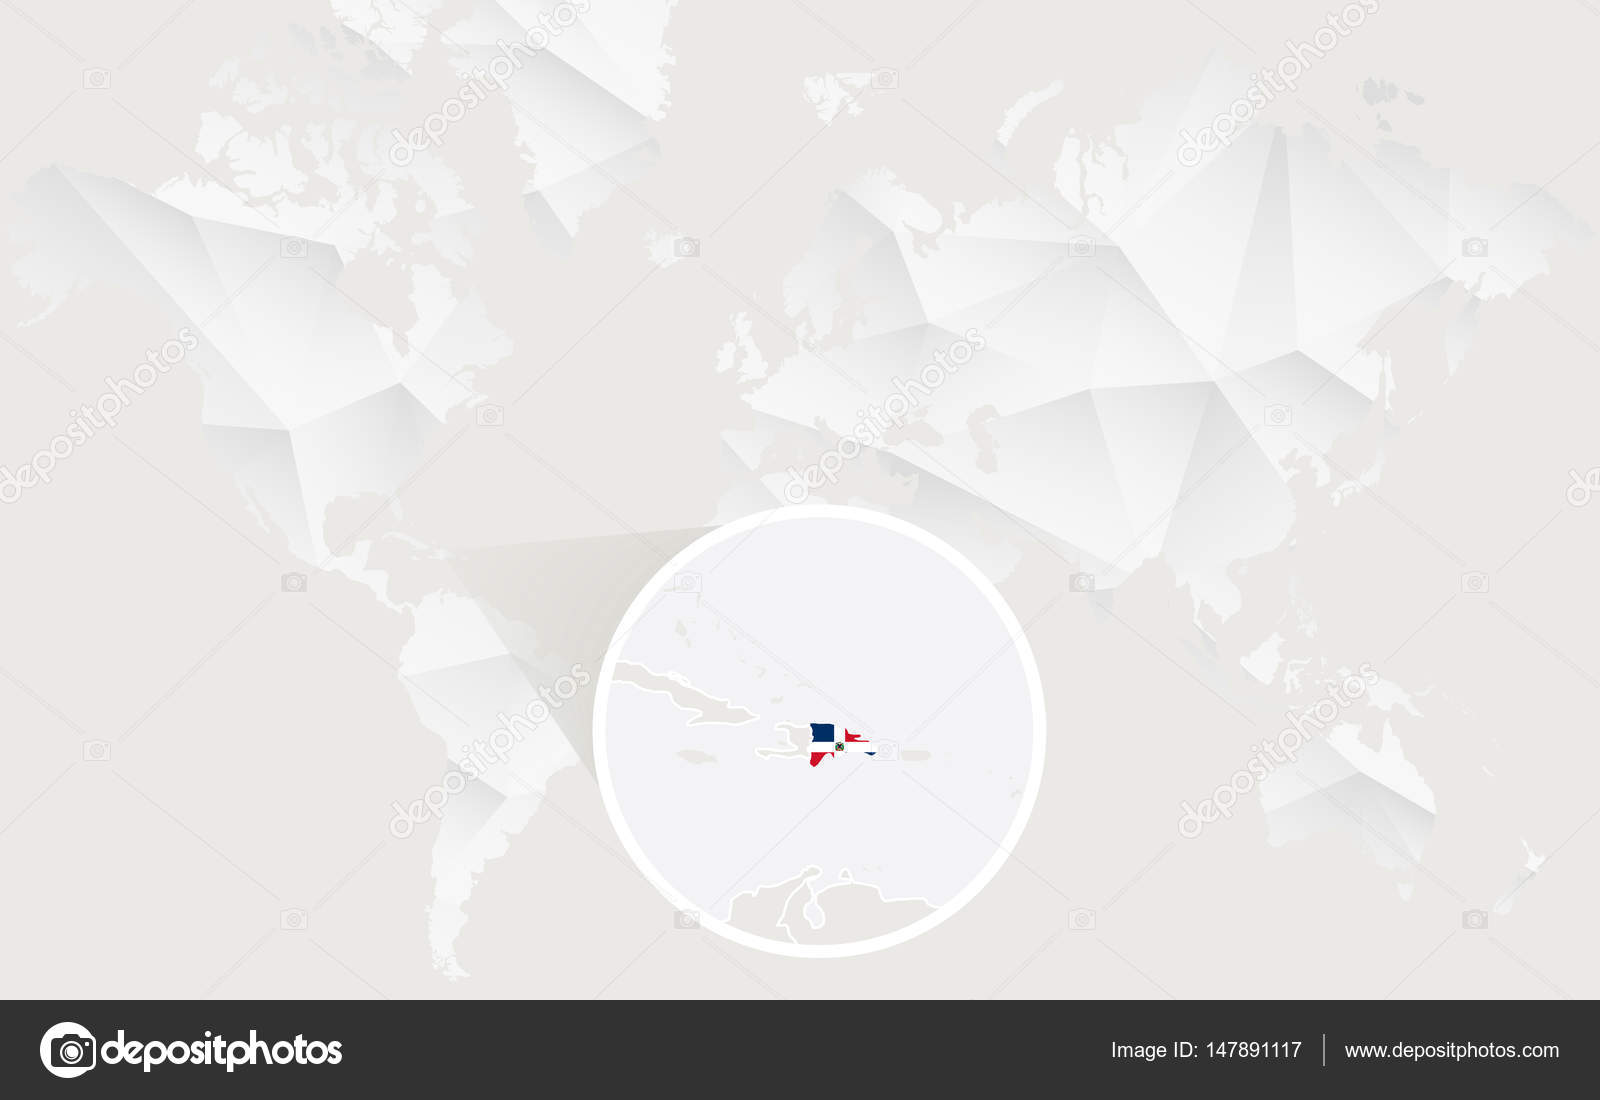 Dominican republic map with flag in contour on white polygonal world dominican republic map with flag in contour on white polygonal world map vector illustration vector by boldg publicscrutiny Choice Image